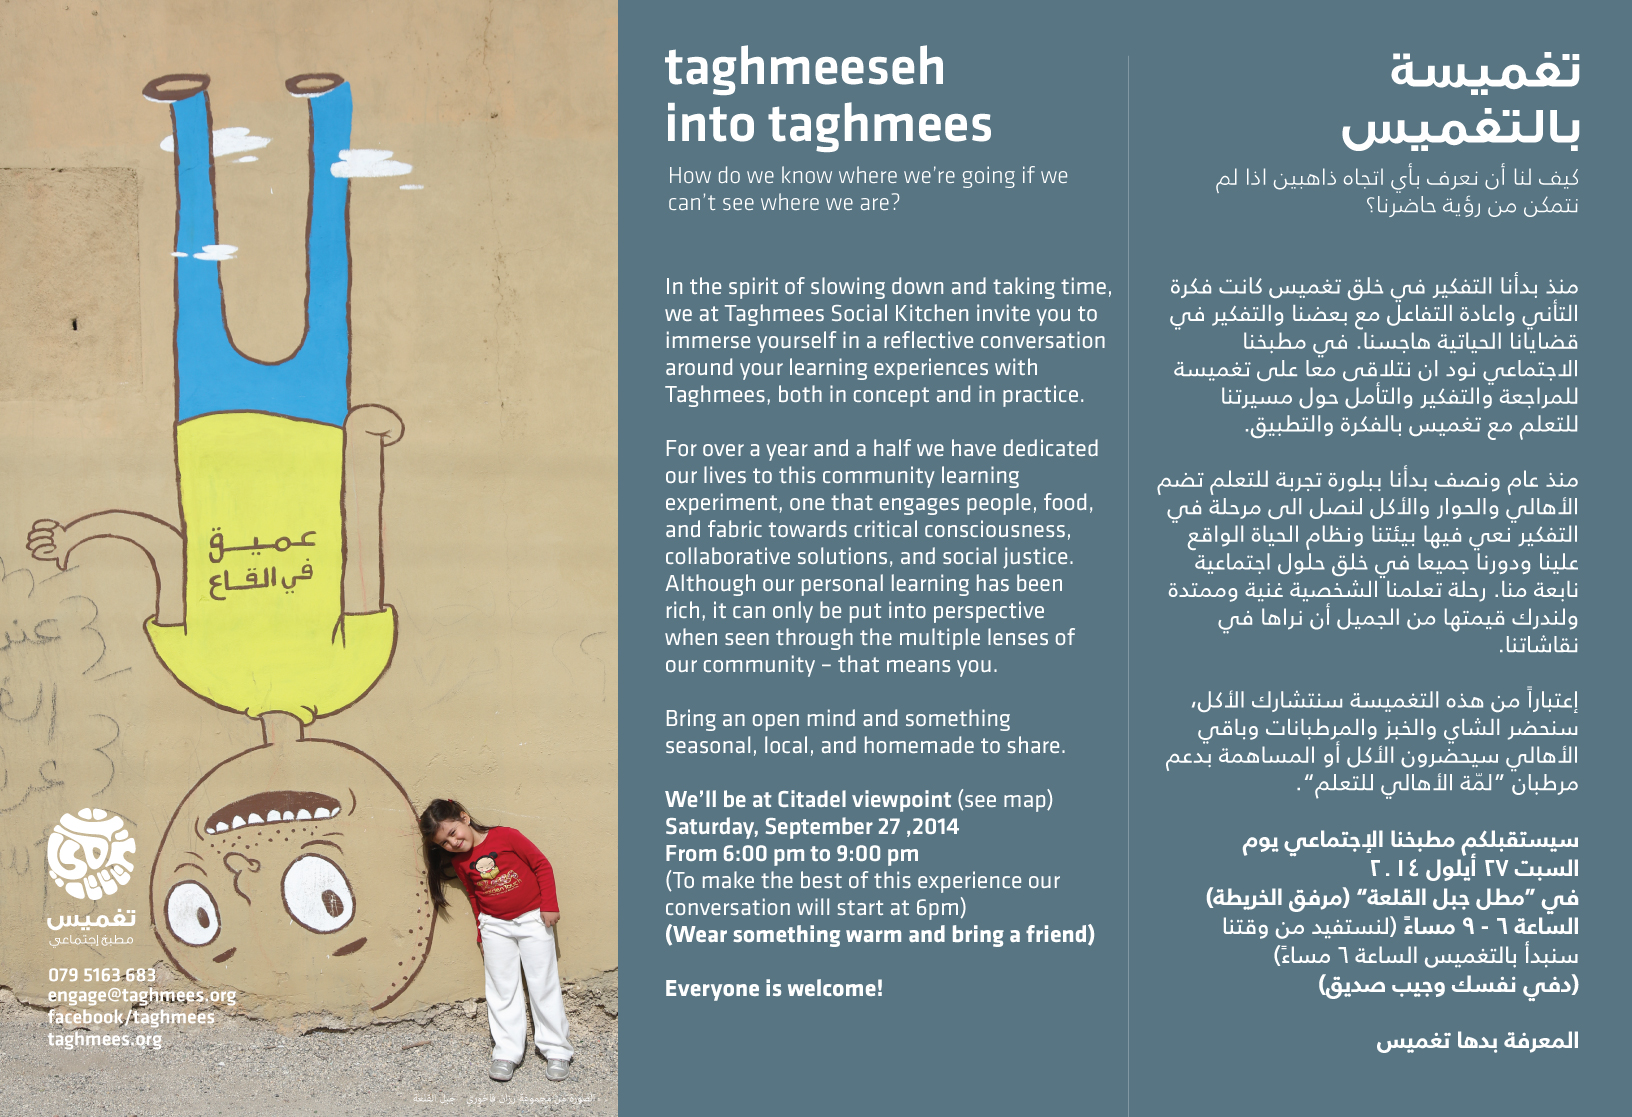 taghmeeseh-into-taghmees-Sept-27,-2014